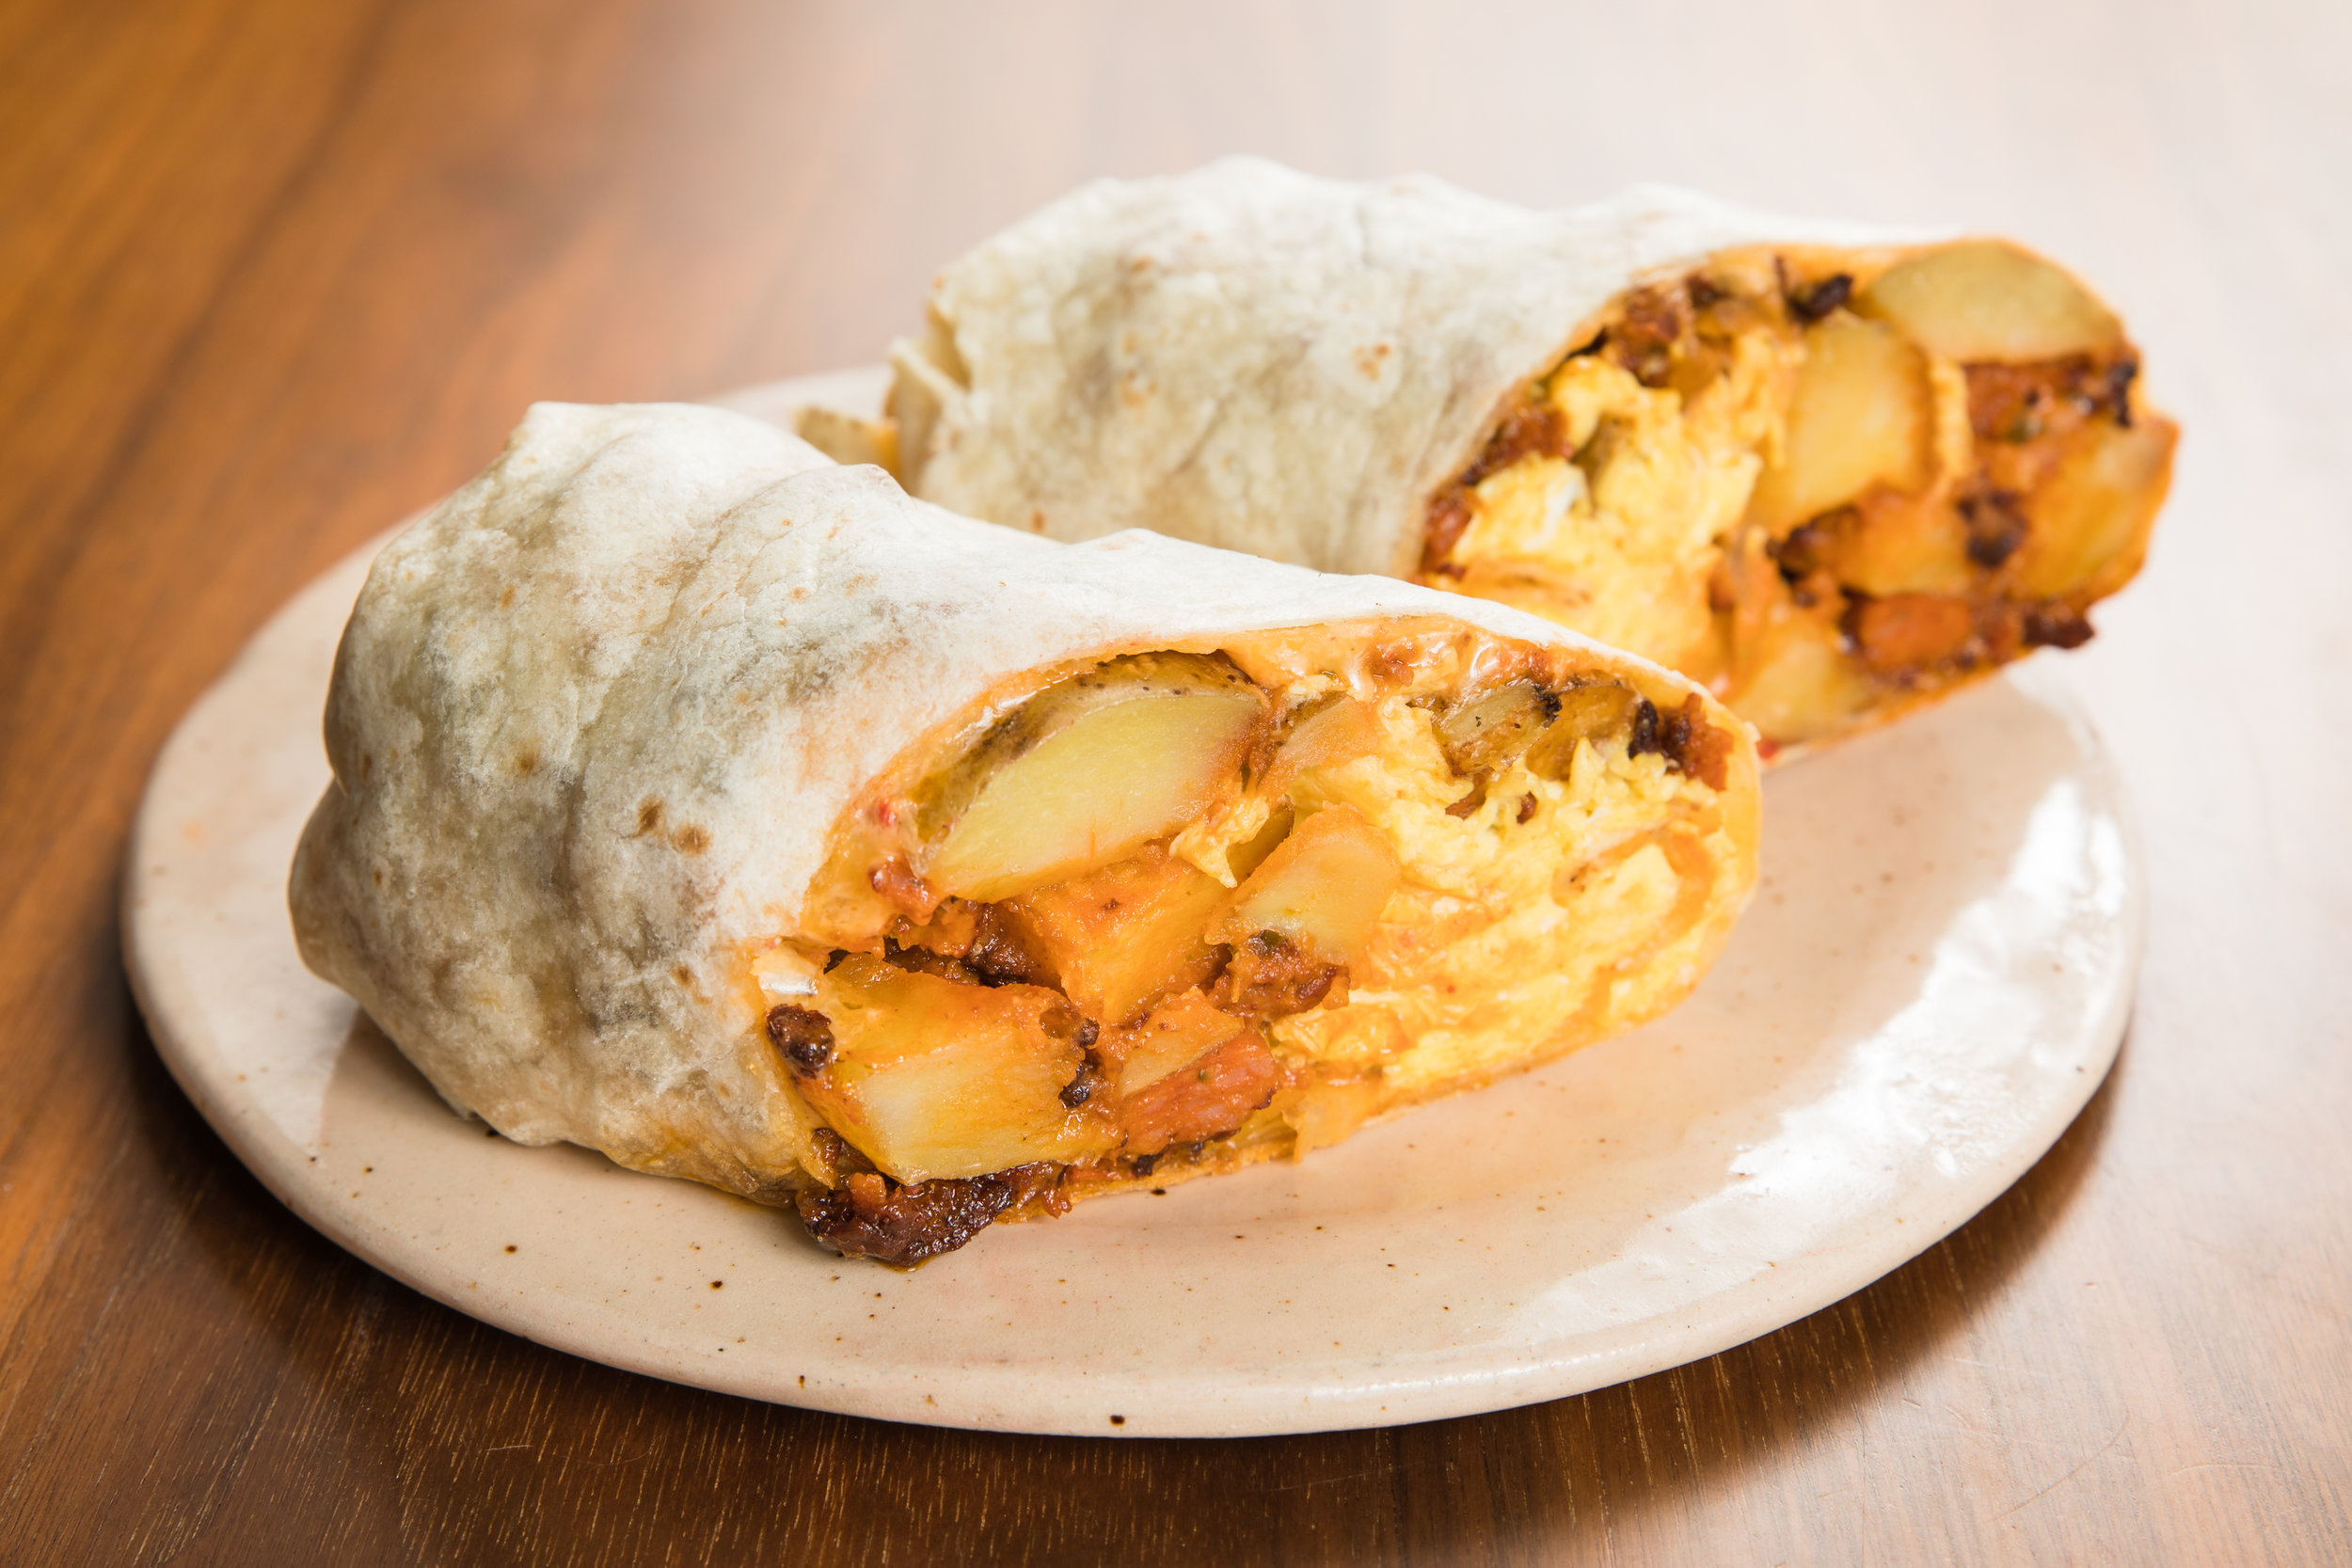 Egg and Potato Breakfast Burrito